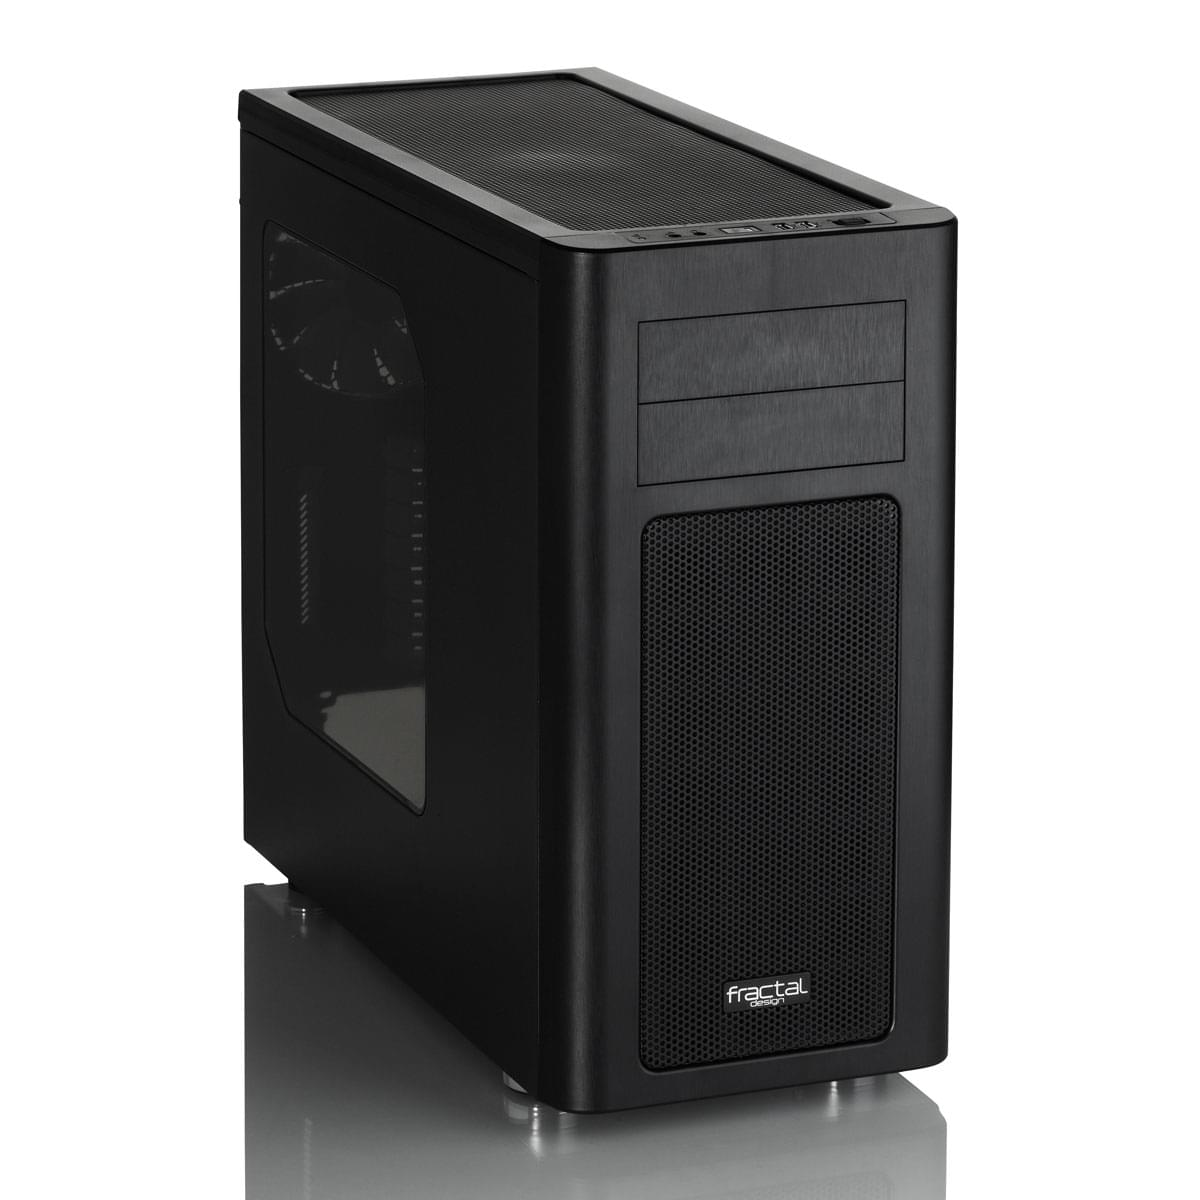 Fractal Design Arc Midi R2 Black USB 3.0 Window -MT/Sans Alim/ATX - Boîtier PC Acier - Sans Alim - 0